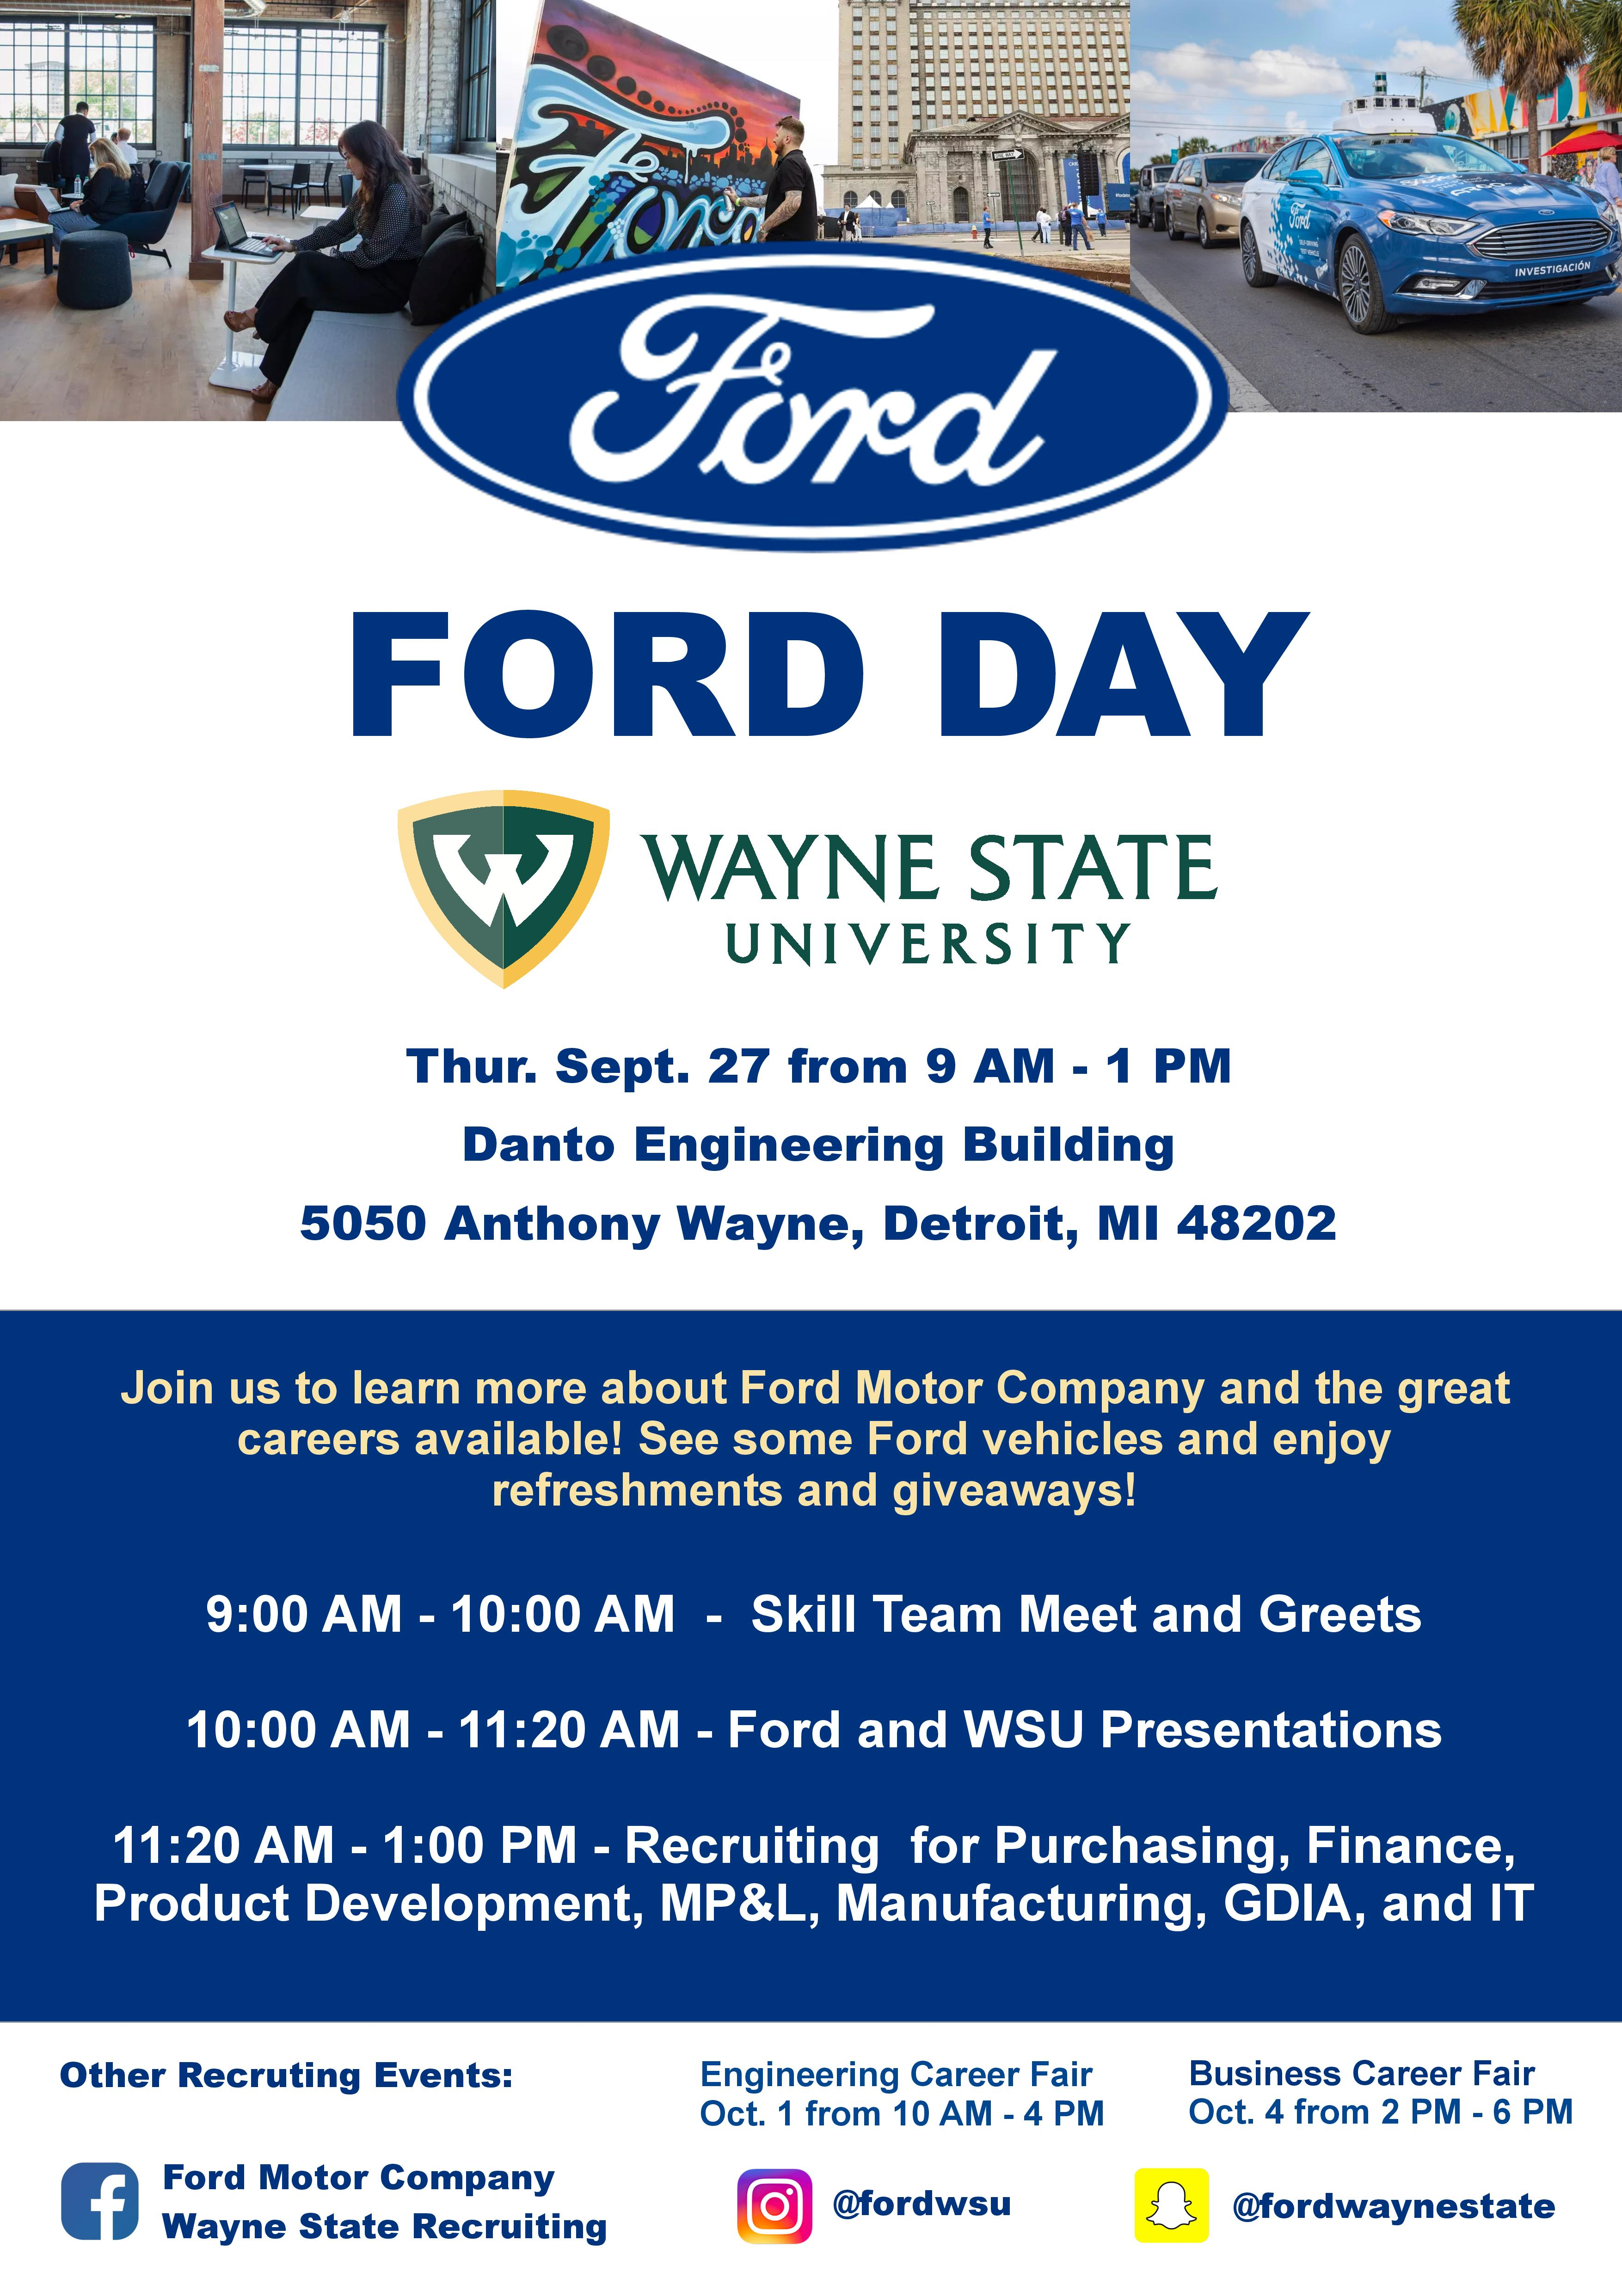 https://ilitchbusiness.wayne.edu/news-images/ford_day_flyer1_-page-001.jpg